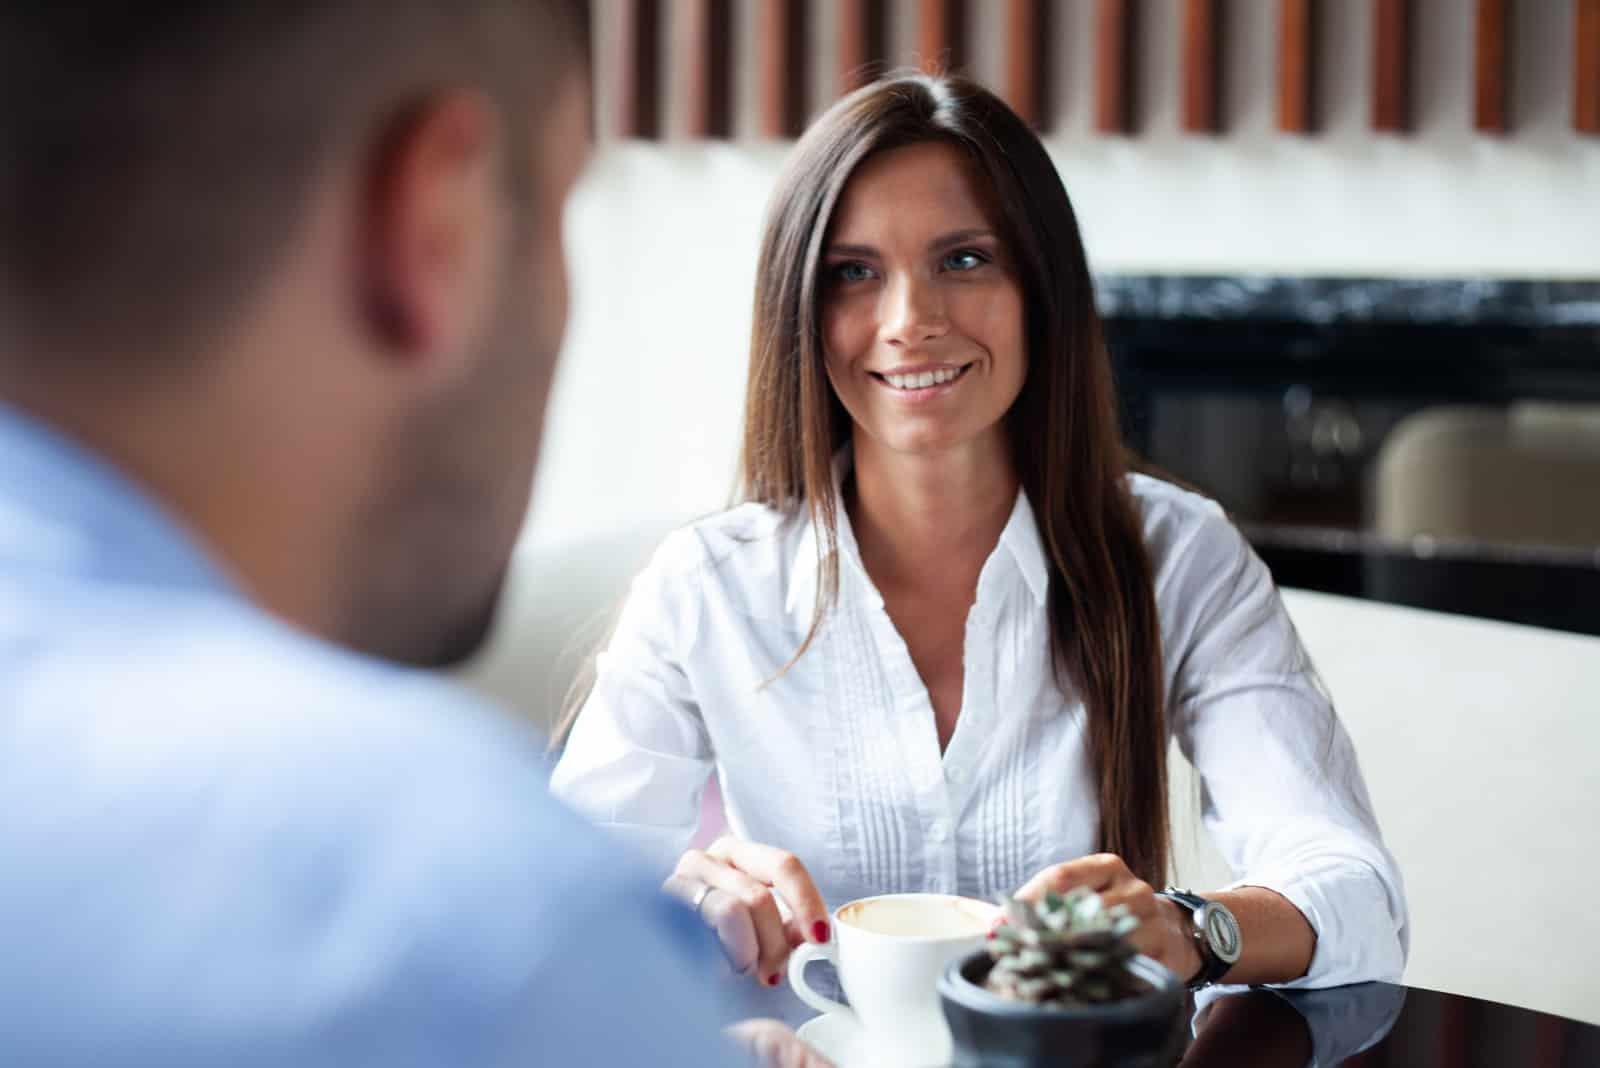 a smiling woman with long black hair is sitting at a table with a man and talking